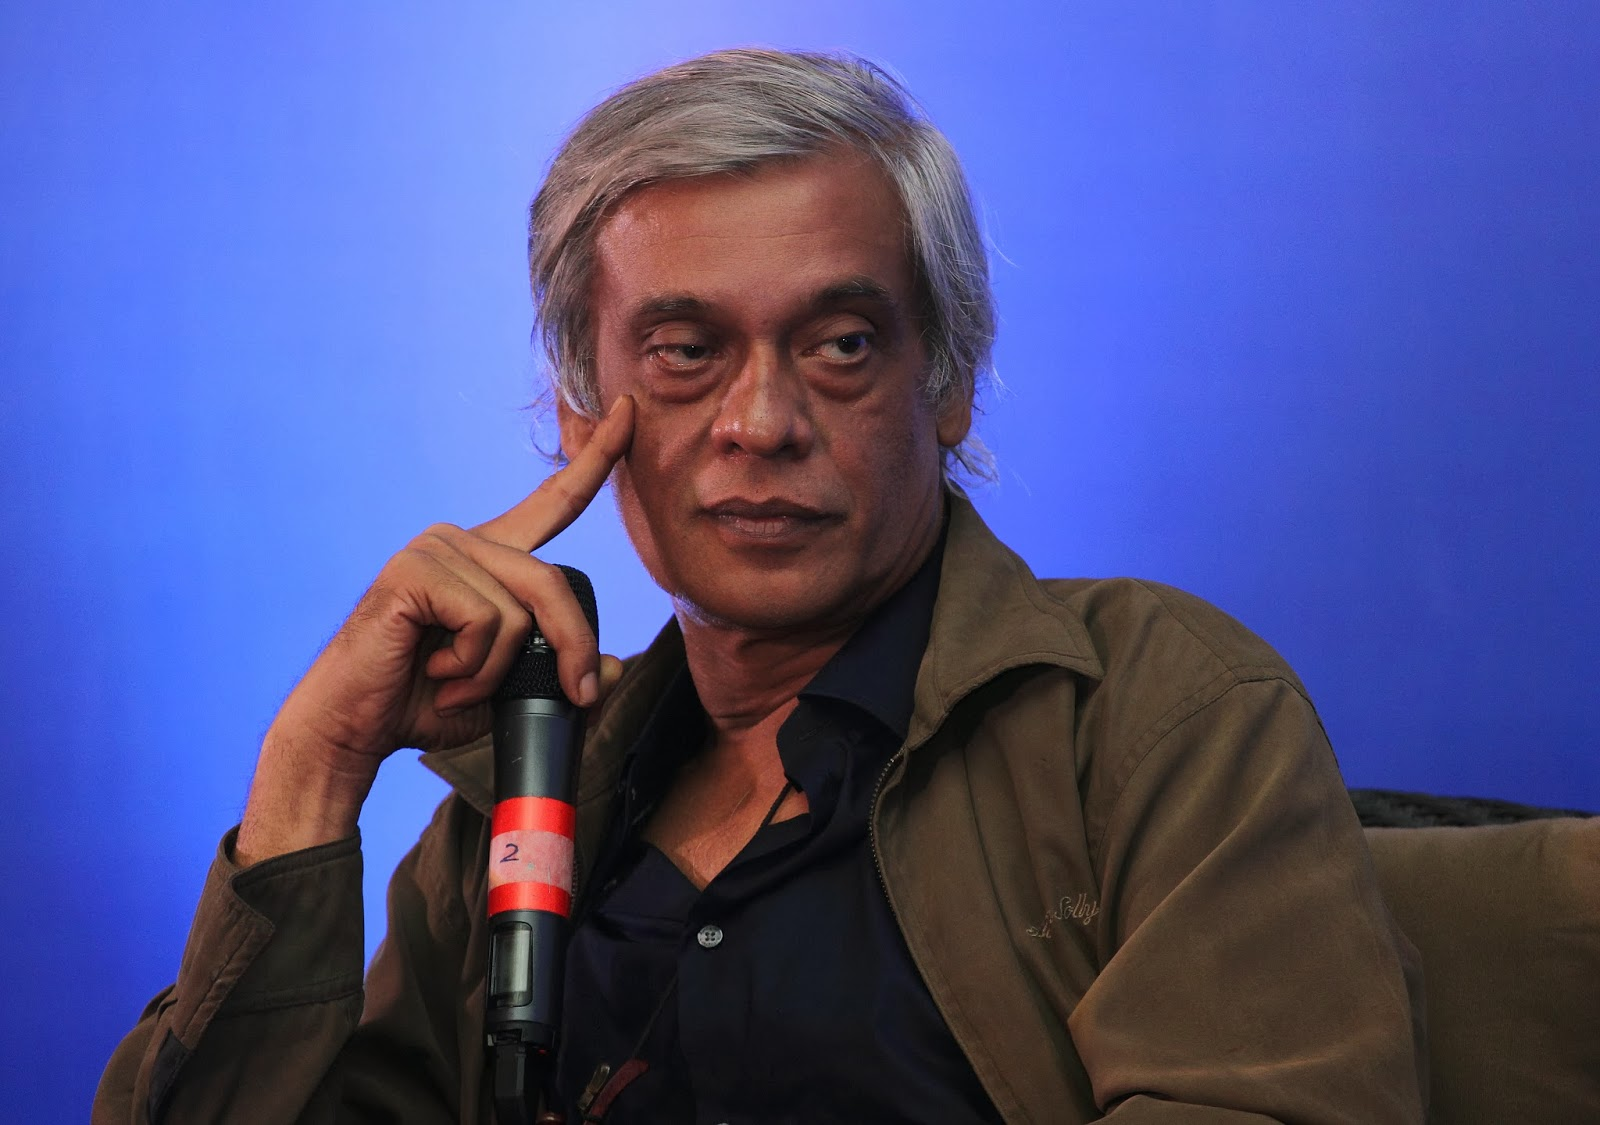 Devdas was journey of Dev to Das, Daasdev the reverse: Sudhir Mishra